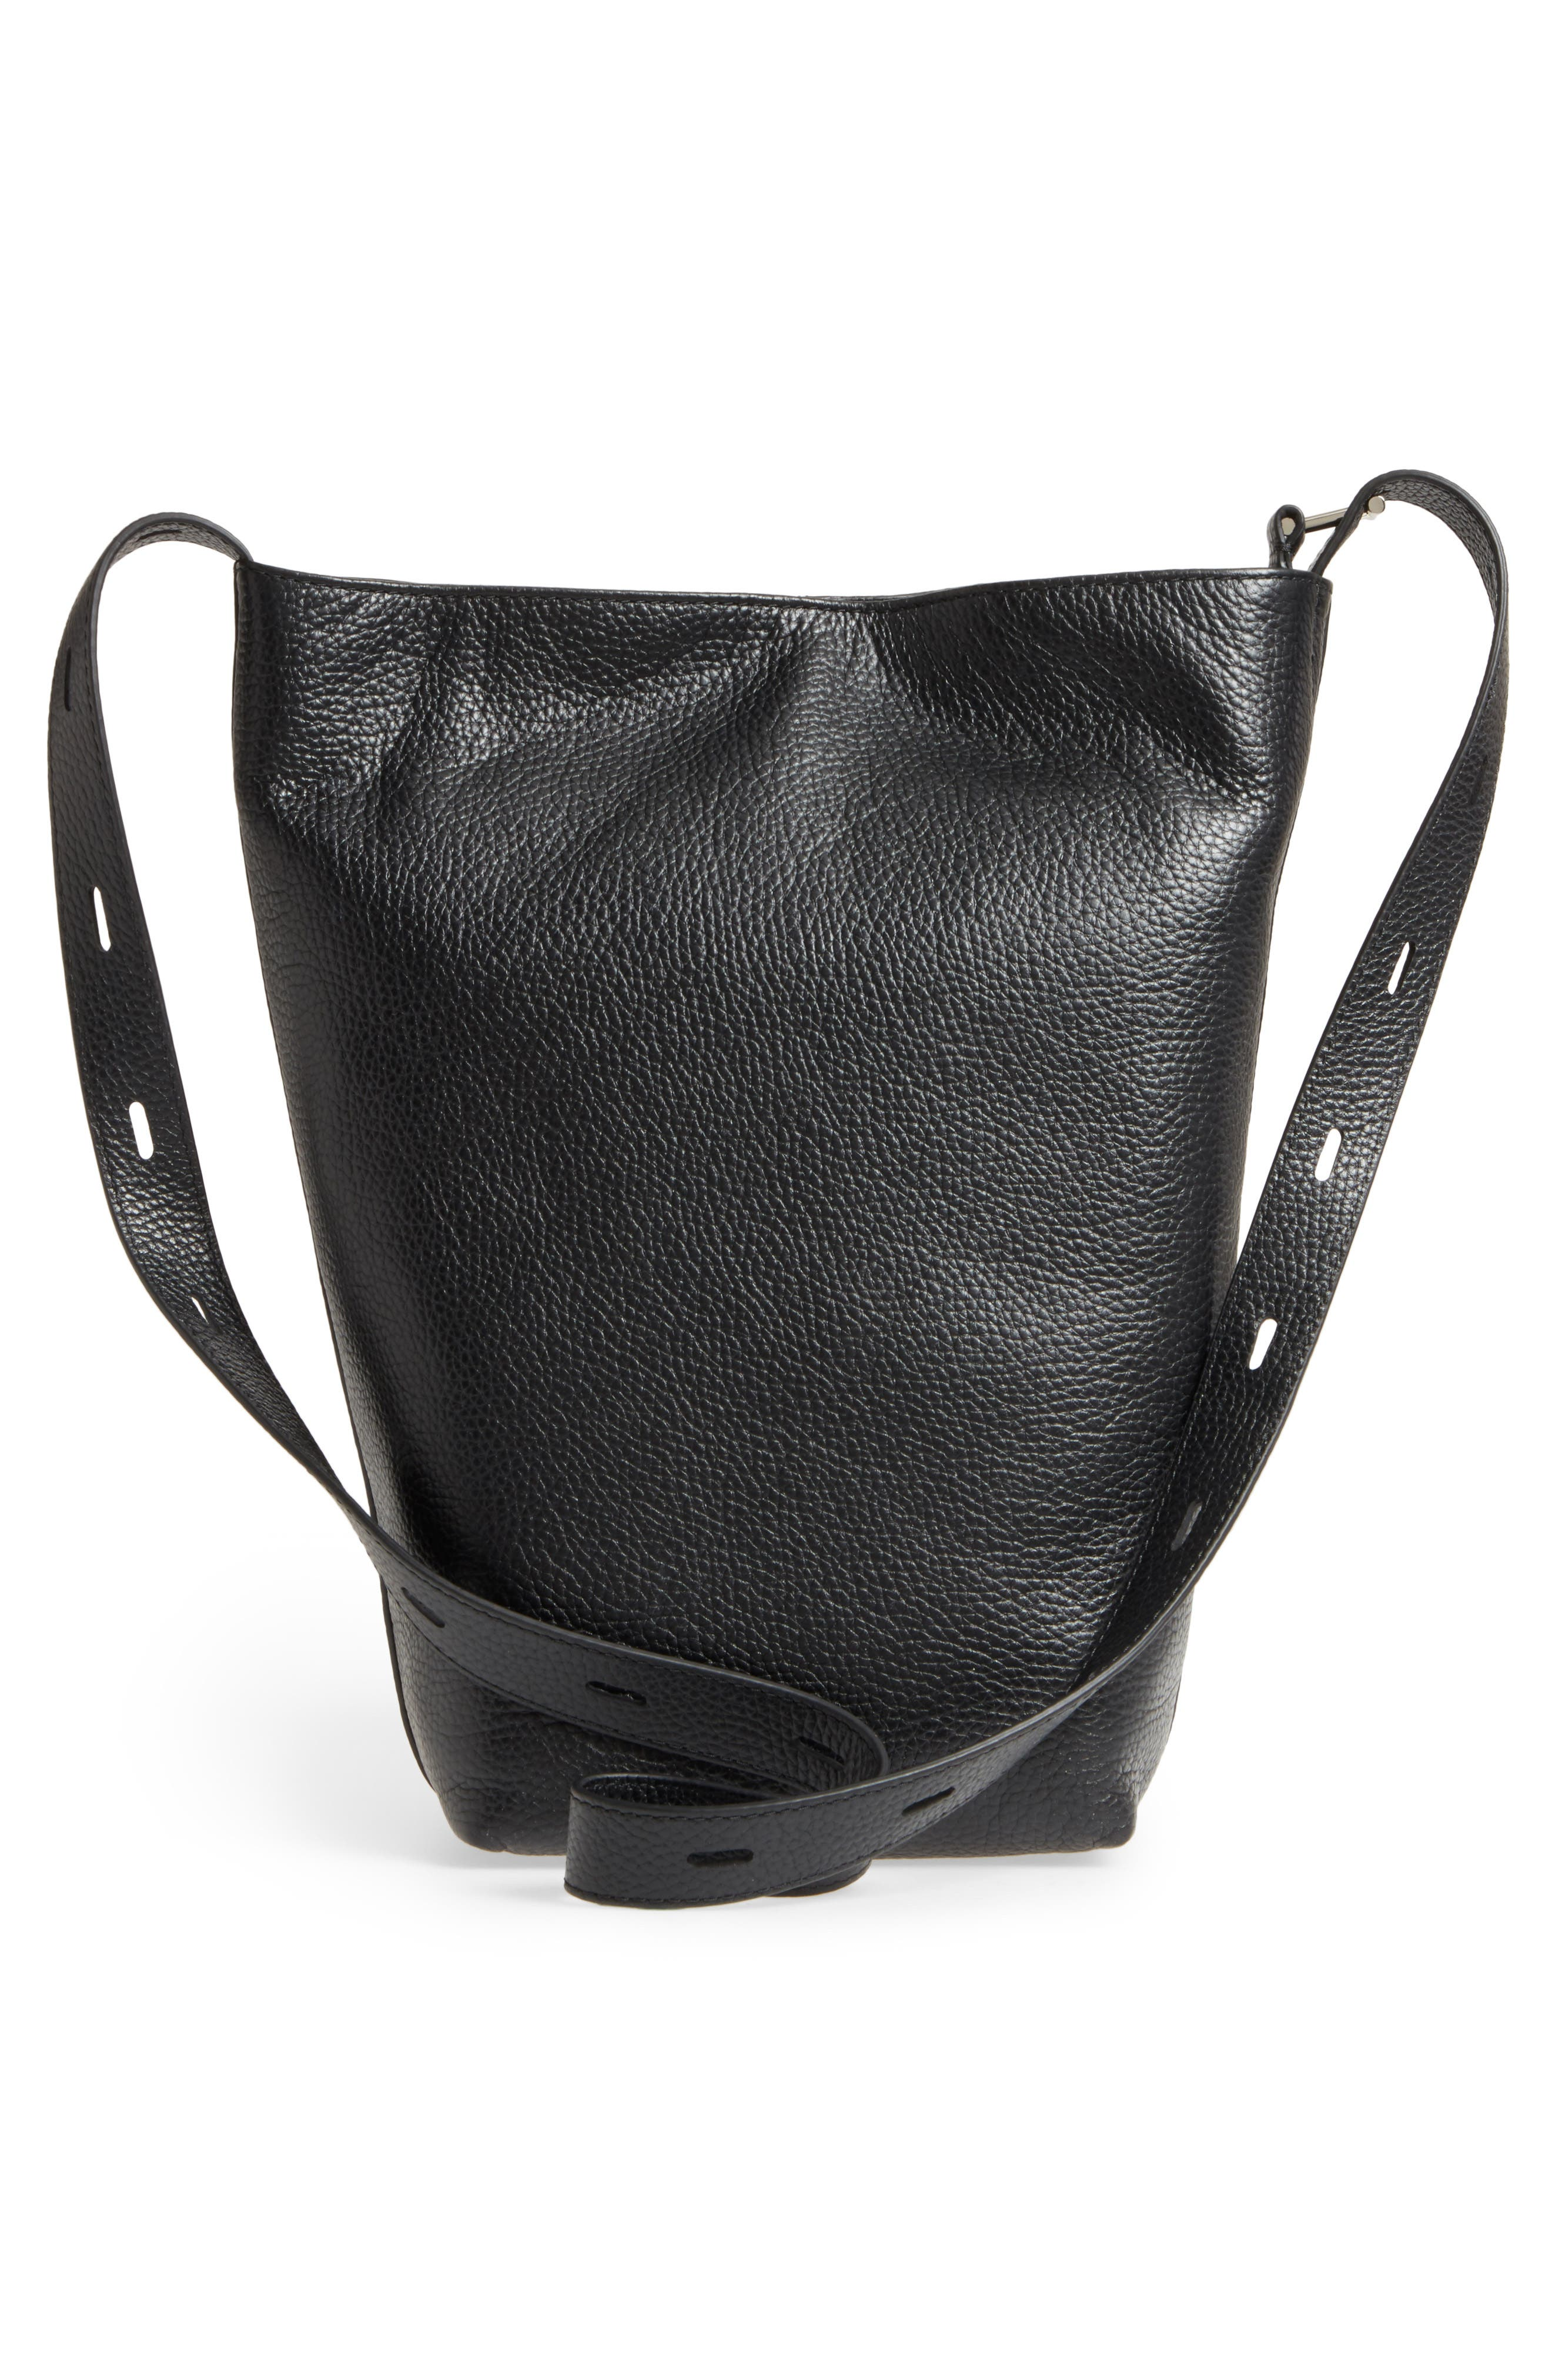 Pebbled Leather Panel Pail Convertible Leather Bucket Bag,                             Alternate thumbnail 3, color,                             001